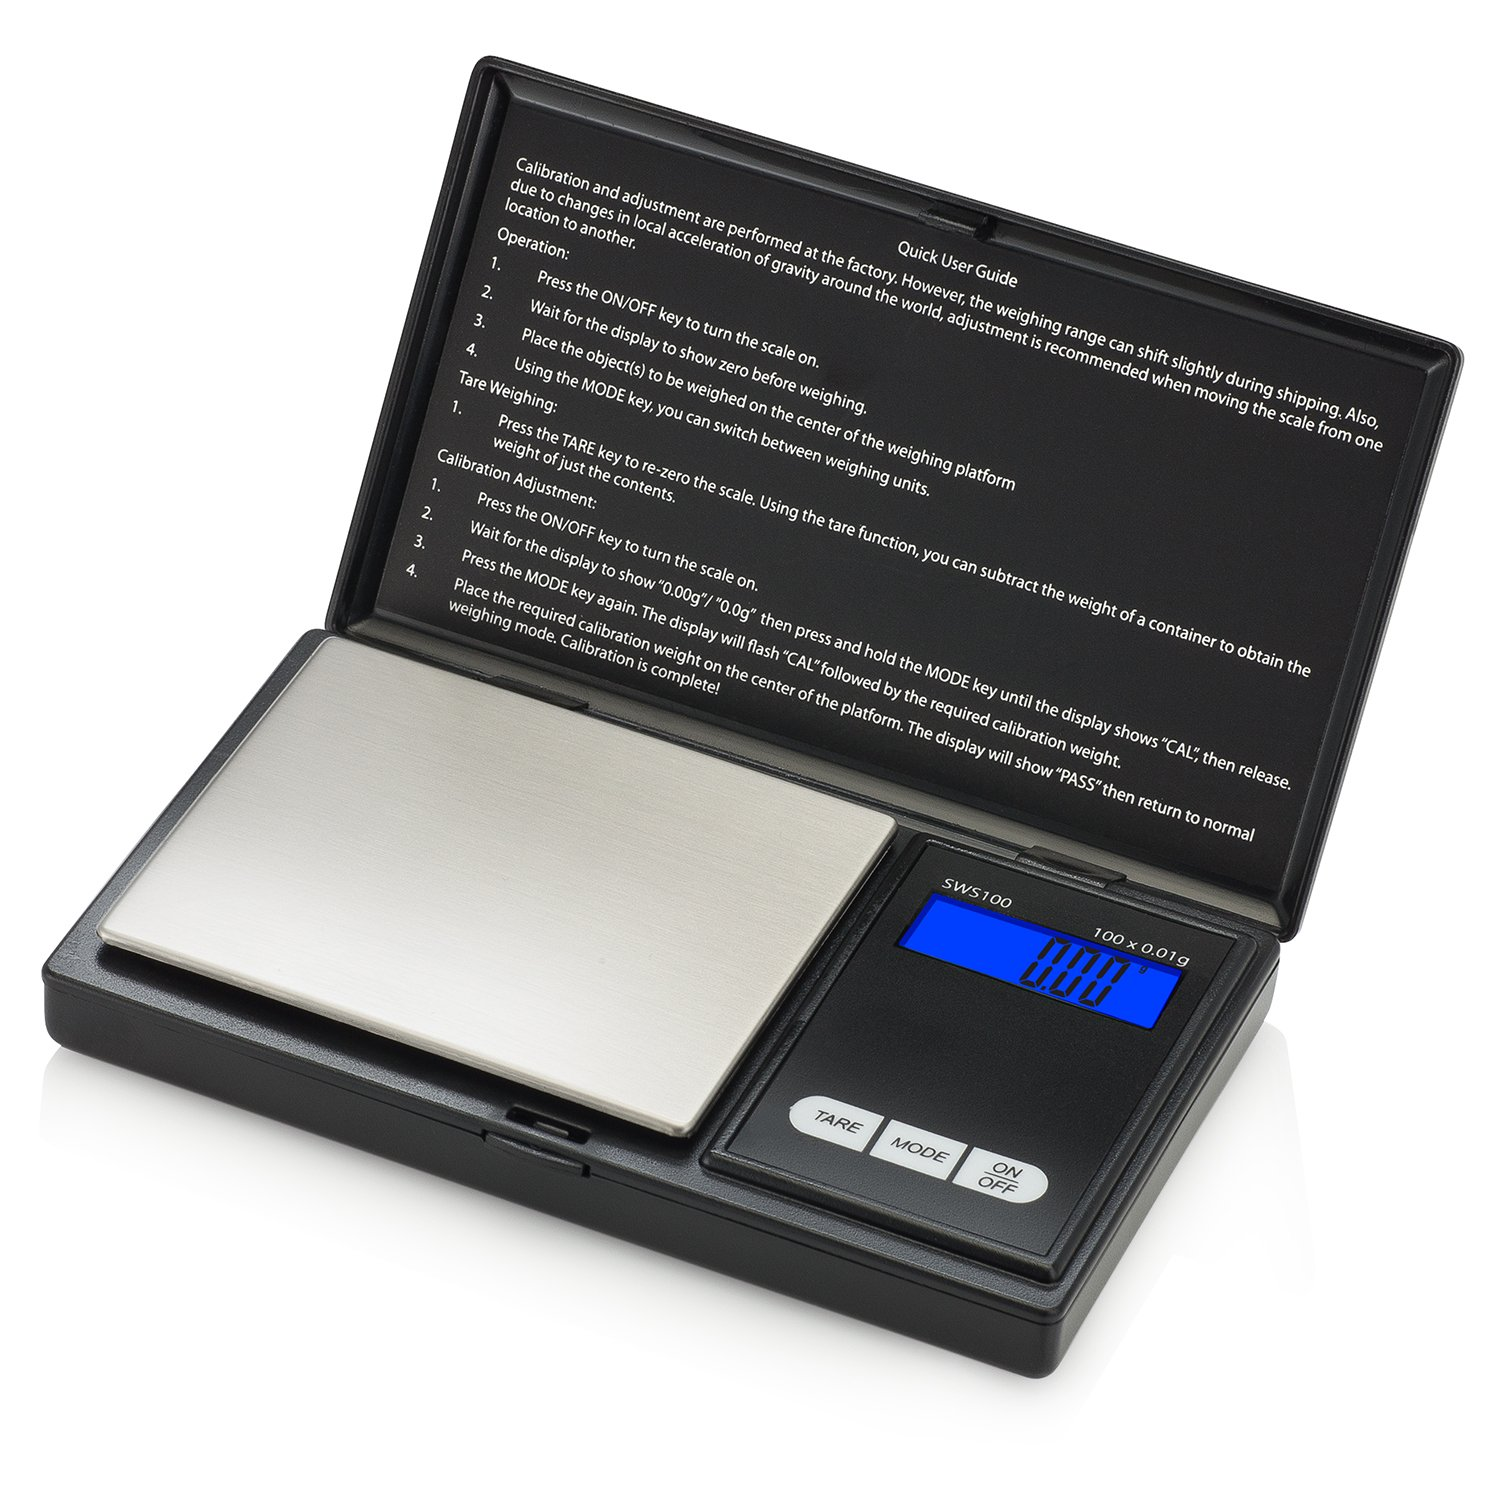 Smart Weigh SWS100 Elite Series Digital Pocket Scale, 100g by 0.01g, Black by Smart Weigh